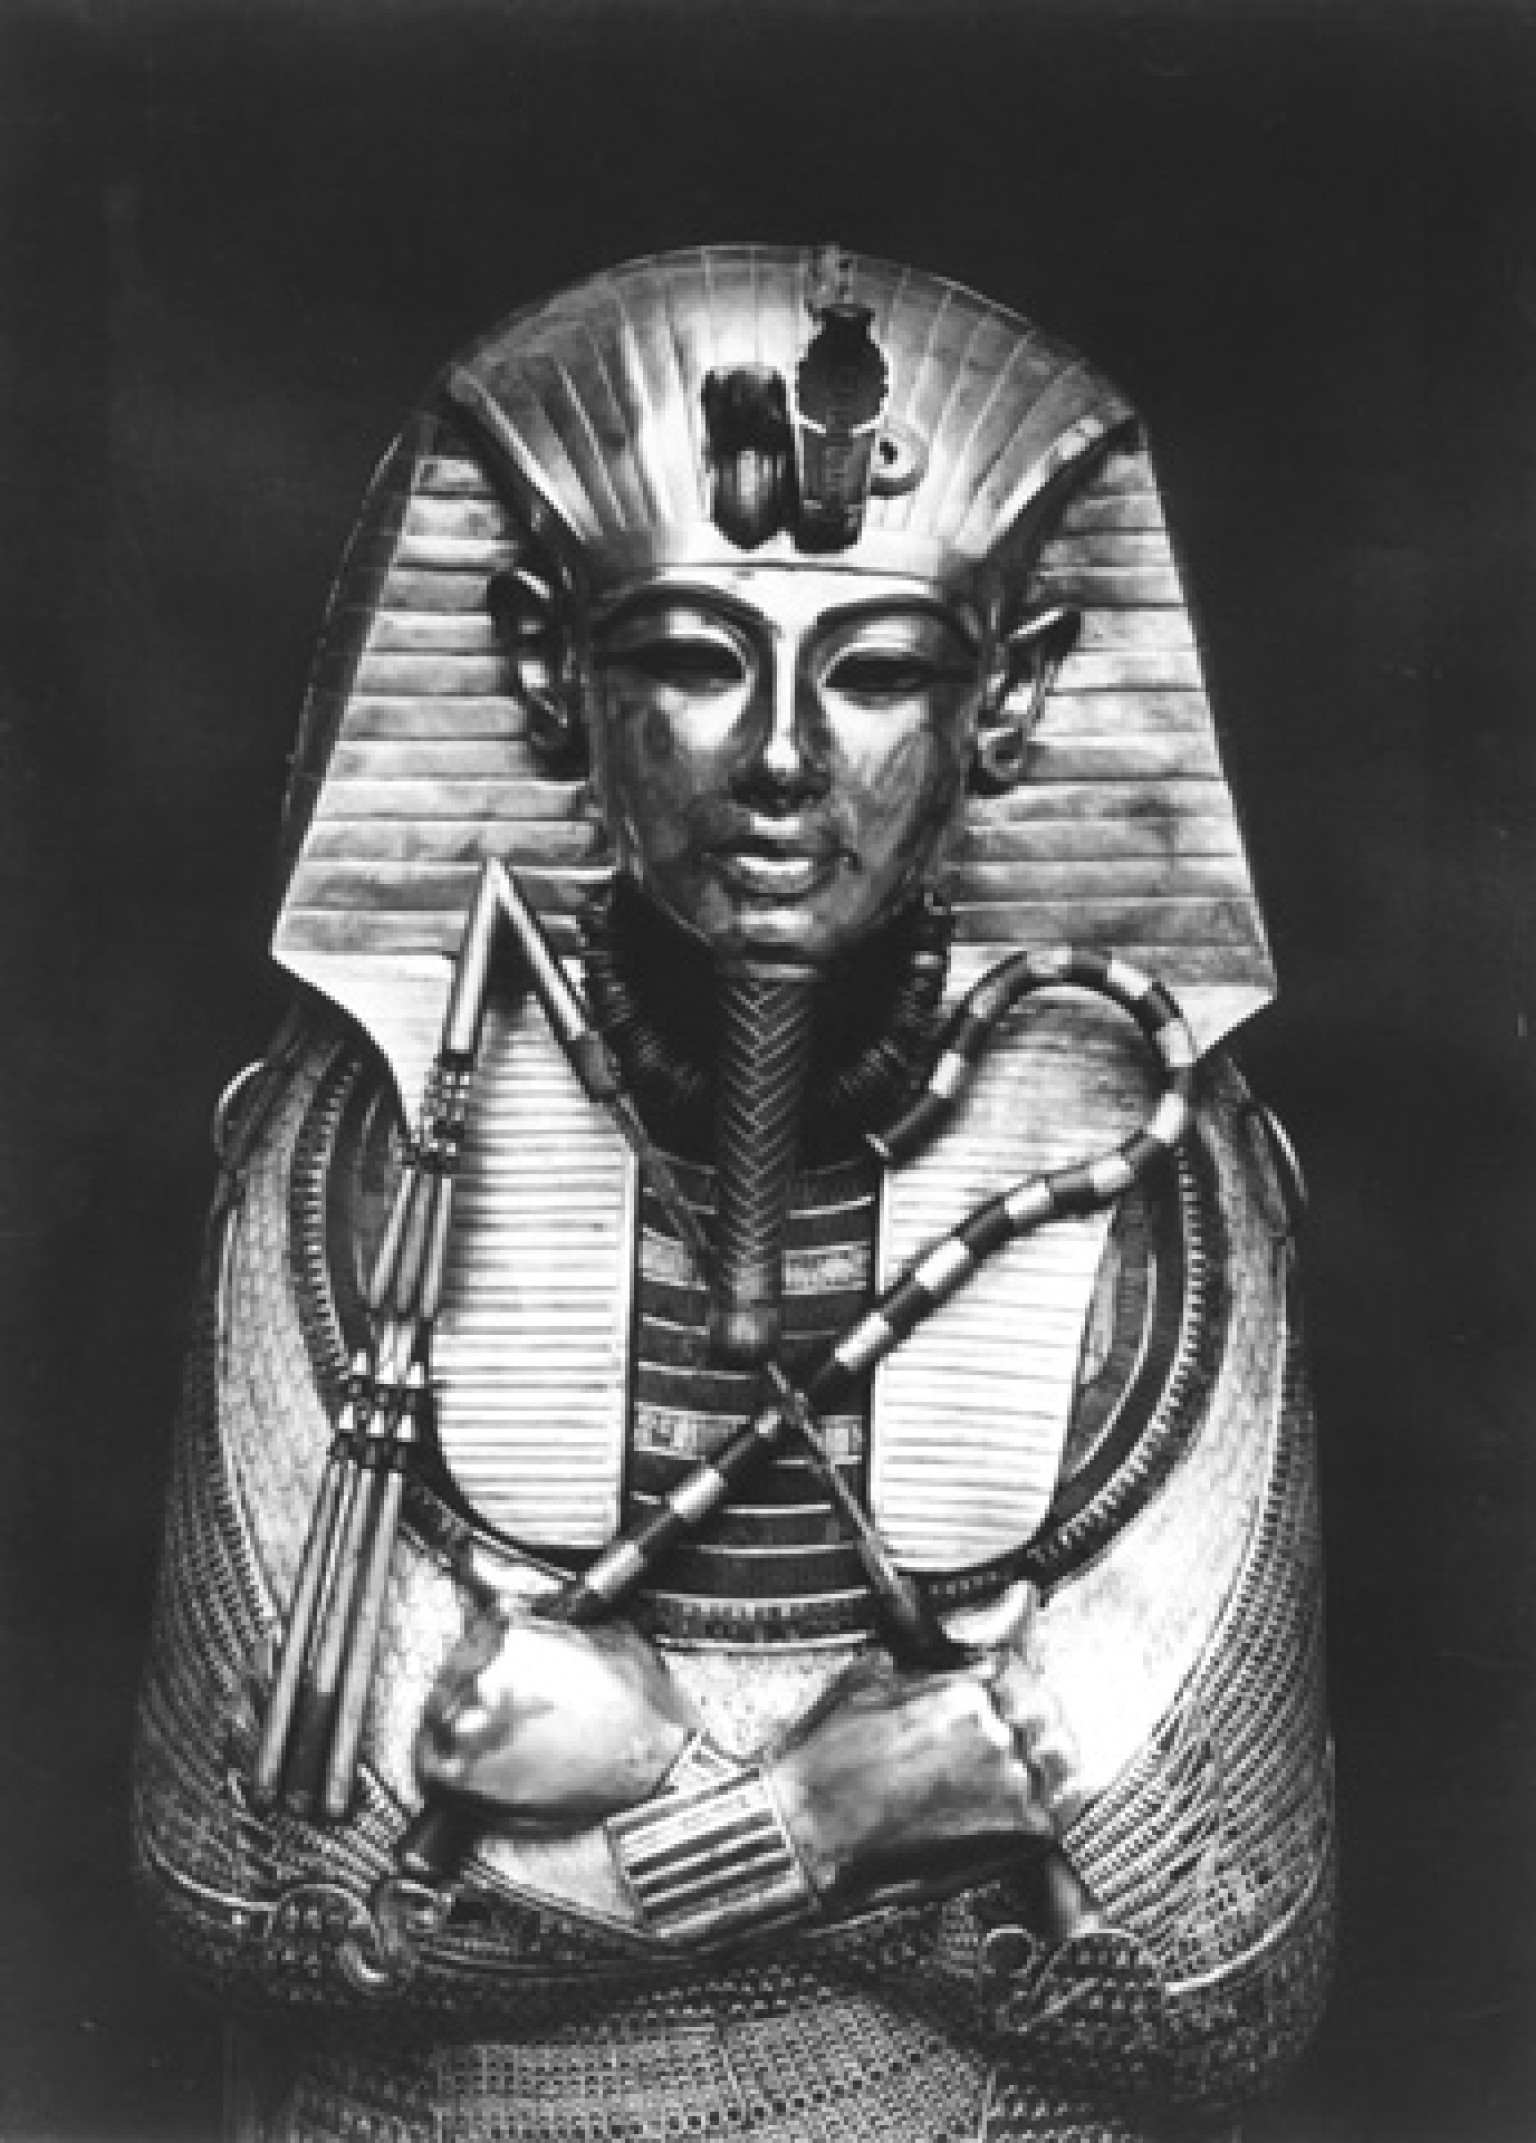 The Curse Of King Tuts Tomb Torrent: 9 Bizarre Facts You Didn't Know About King Tut's Mummy